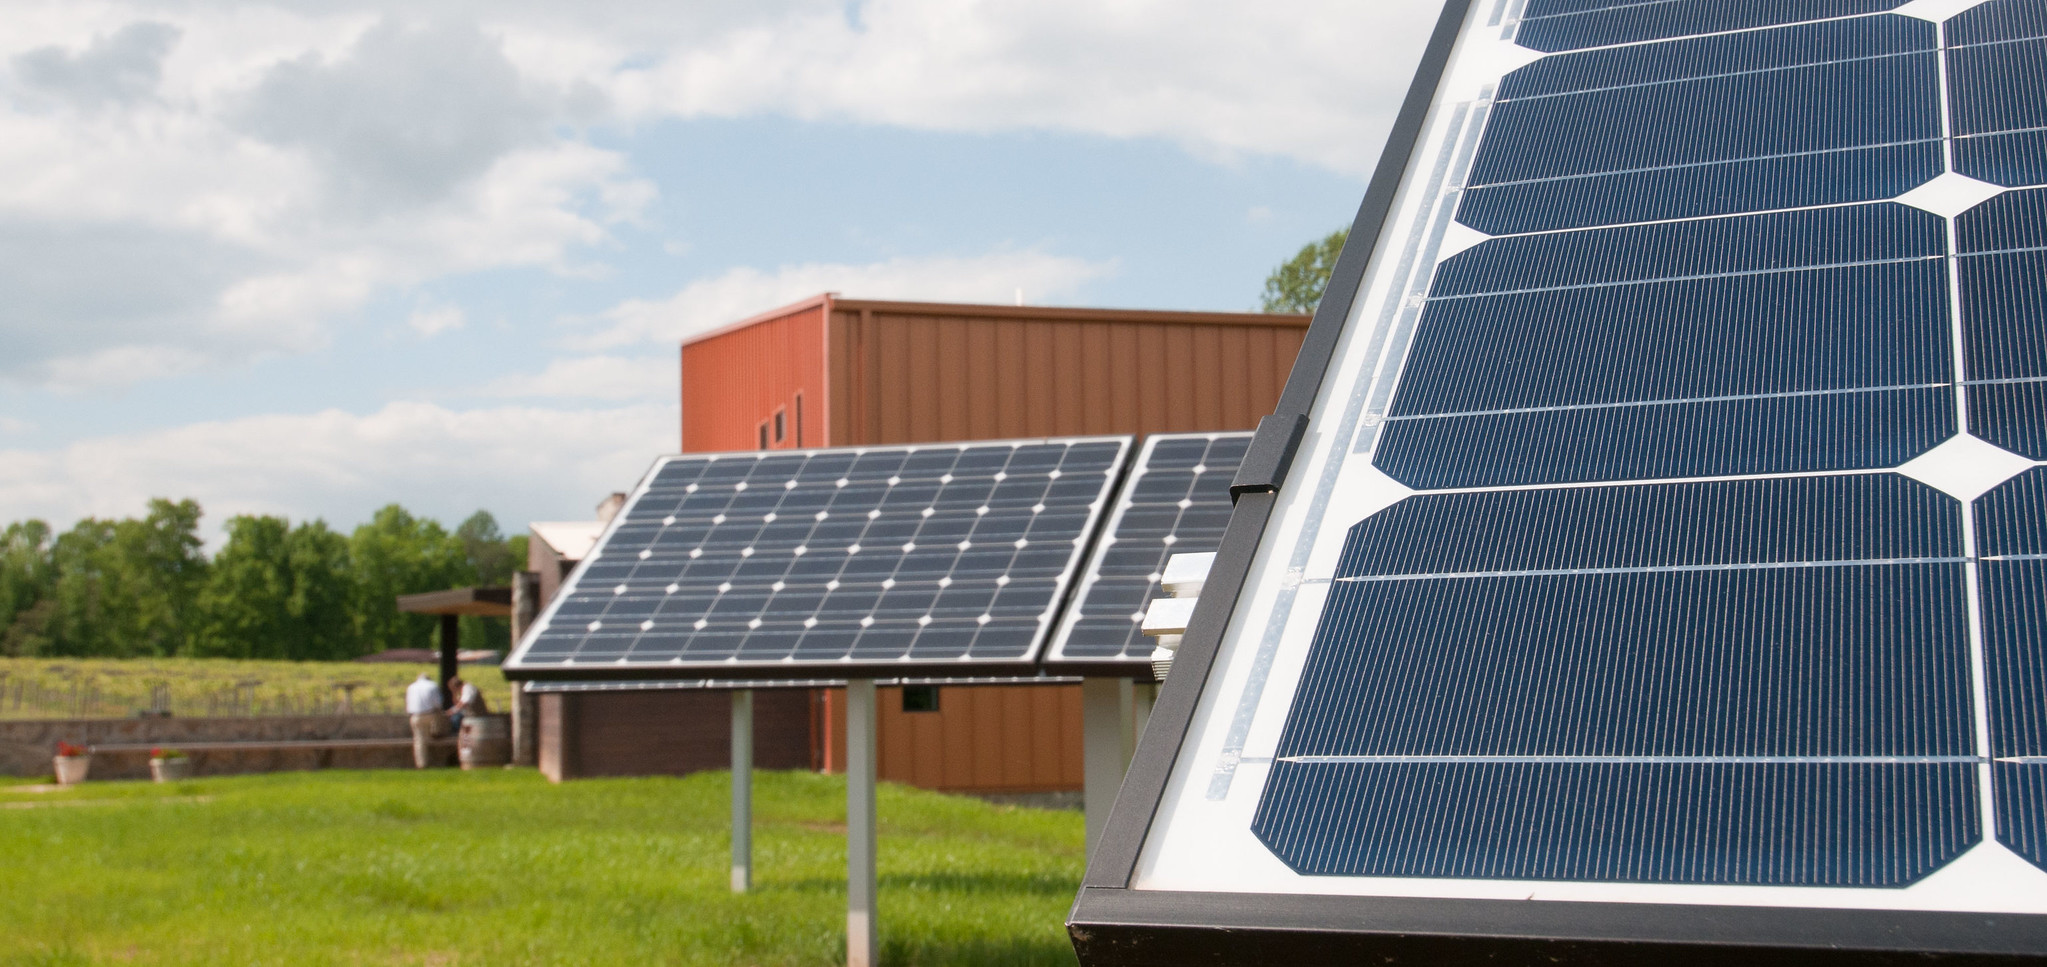 Virginia climbs into top five states for solar | Energy News Network